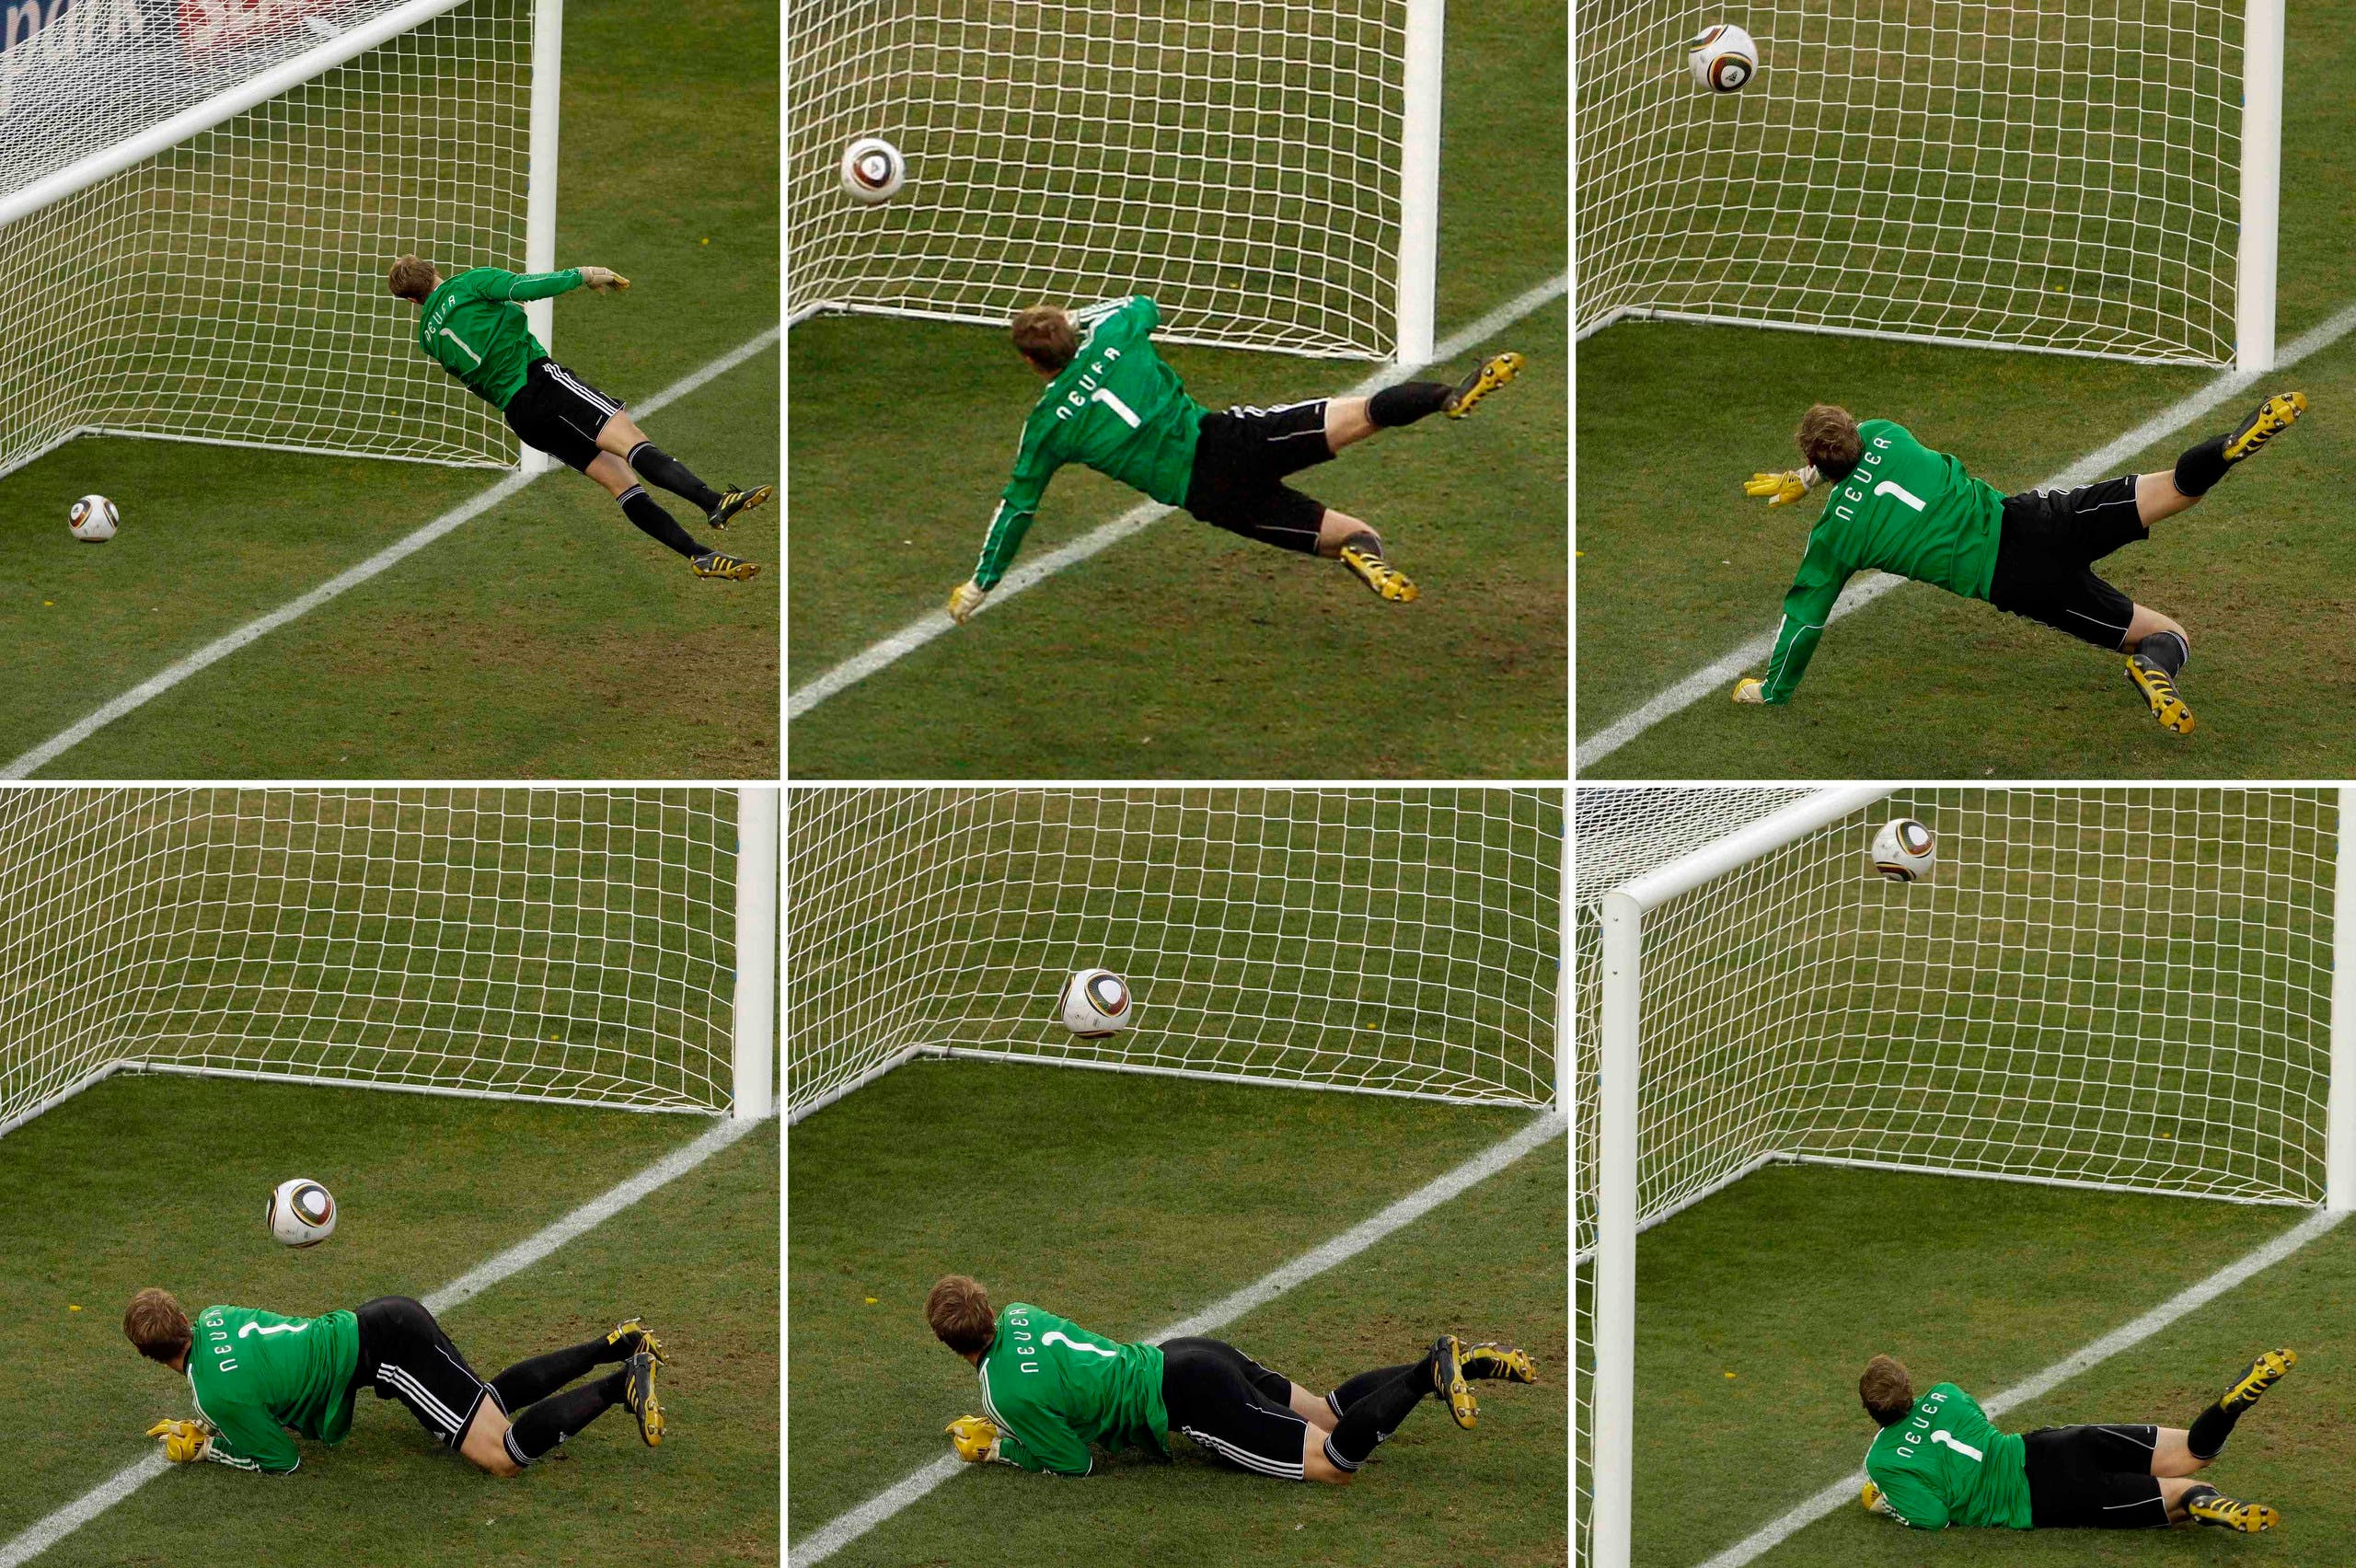 This Sunday, June 27, 2010 file combination of six photos shows Germany goalkeeper Manuel Neuer looking at the ball that hit the bar, bounce over the line during the World Cup round of 16 soccer match between Germany and England at Free State Stadium in Bloemfontein, South Africa. The goal was disallowed by the game's referee. After blown calls at vital moments of vital games, before a worldwide audience at the World Cup, the guardians of international soccer are being pressed harder than ever to explain resistance to video replay and their embrace of human error. (AP)